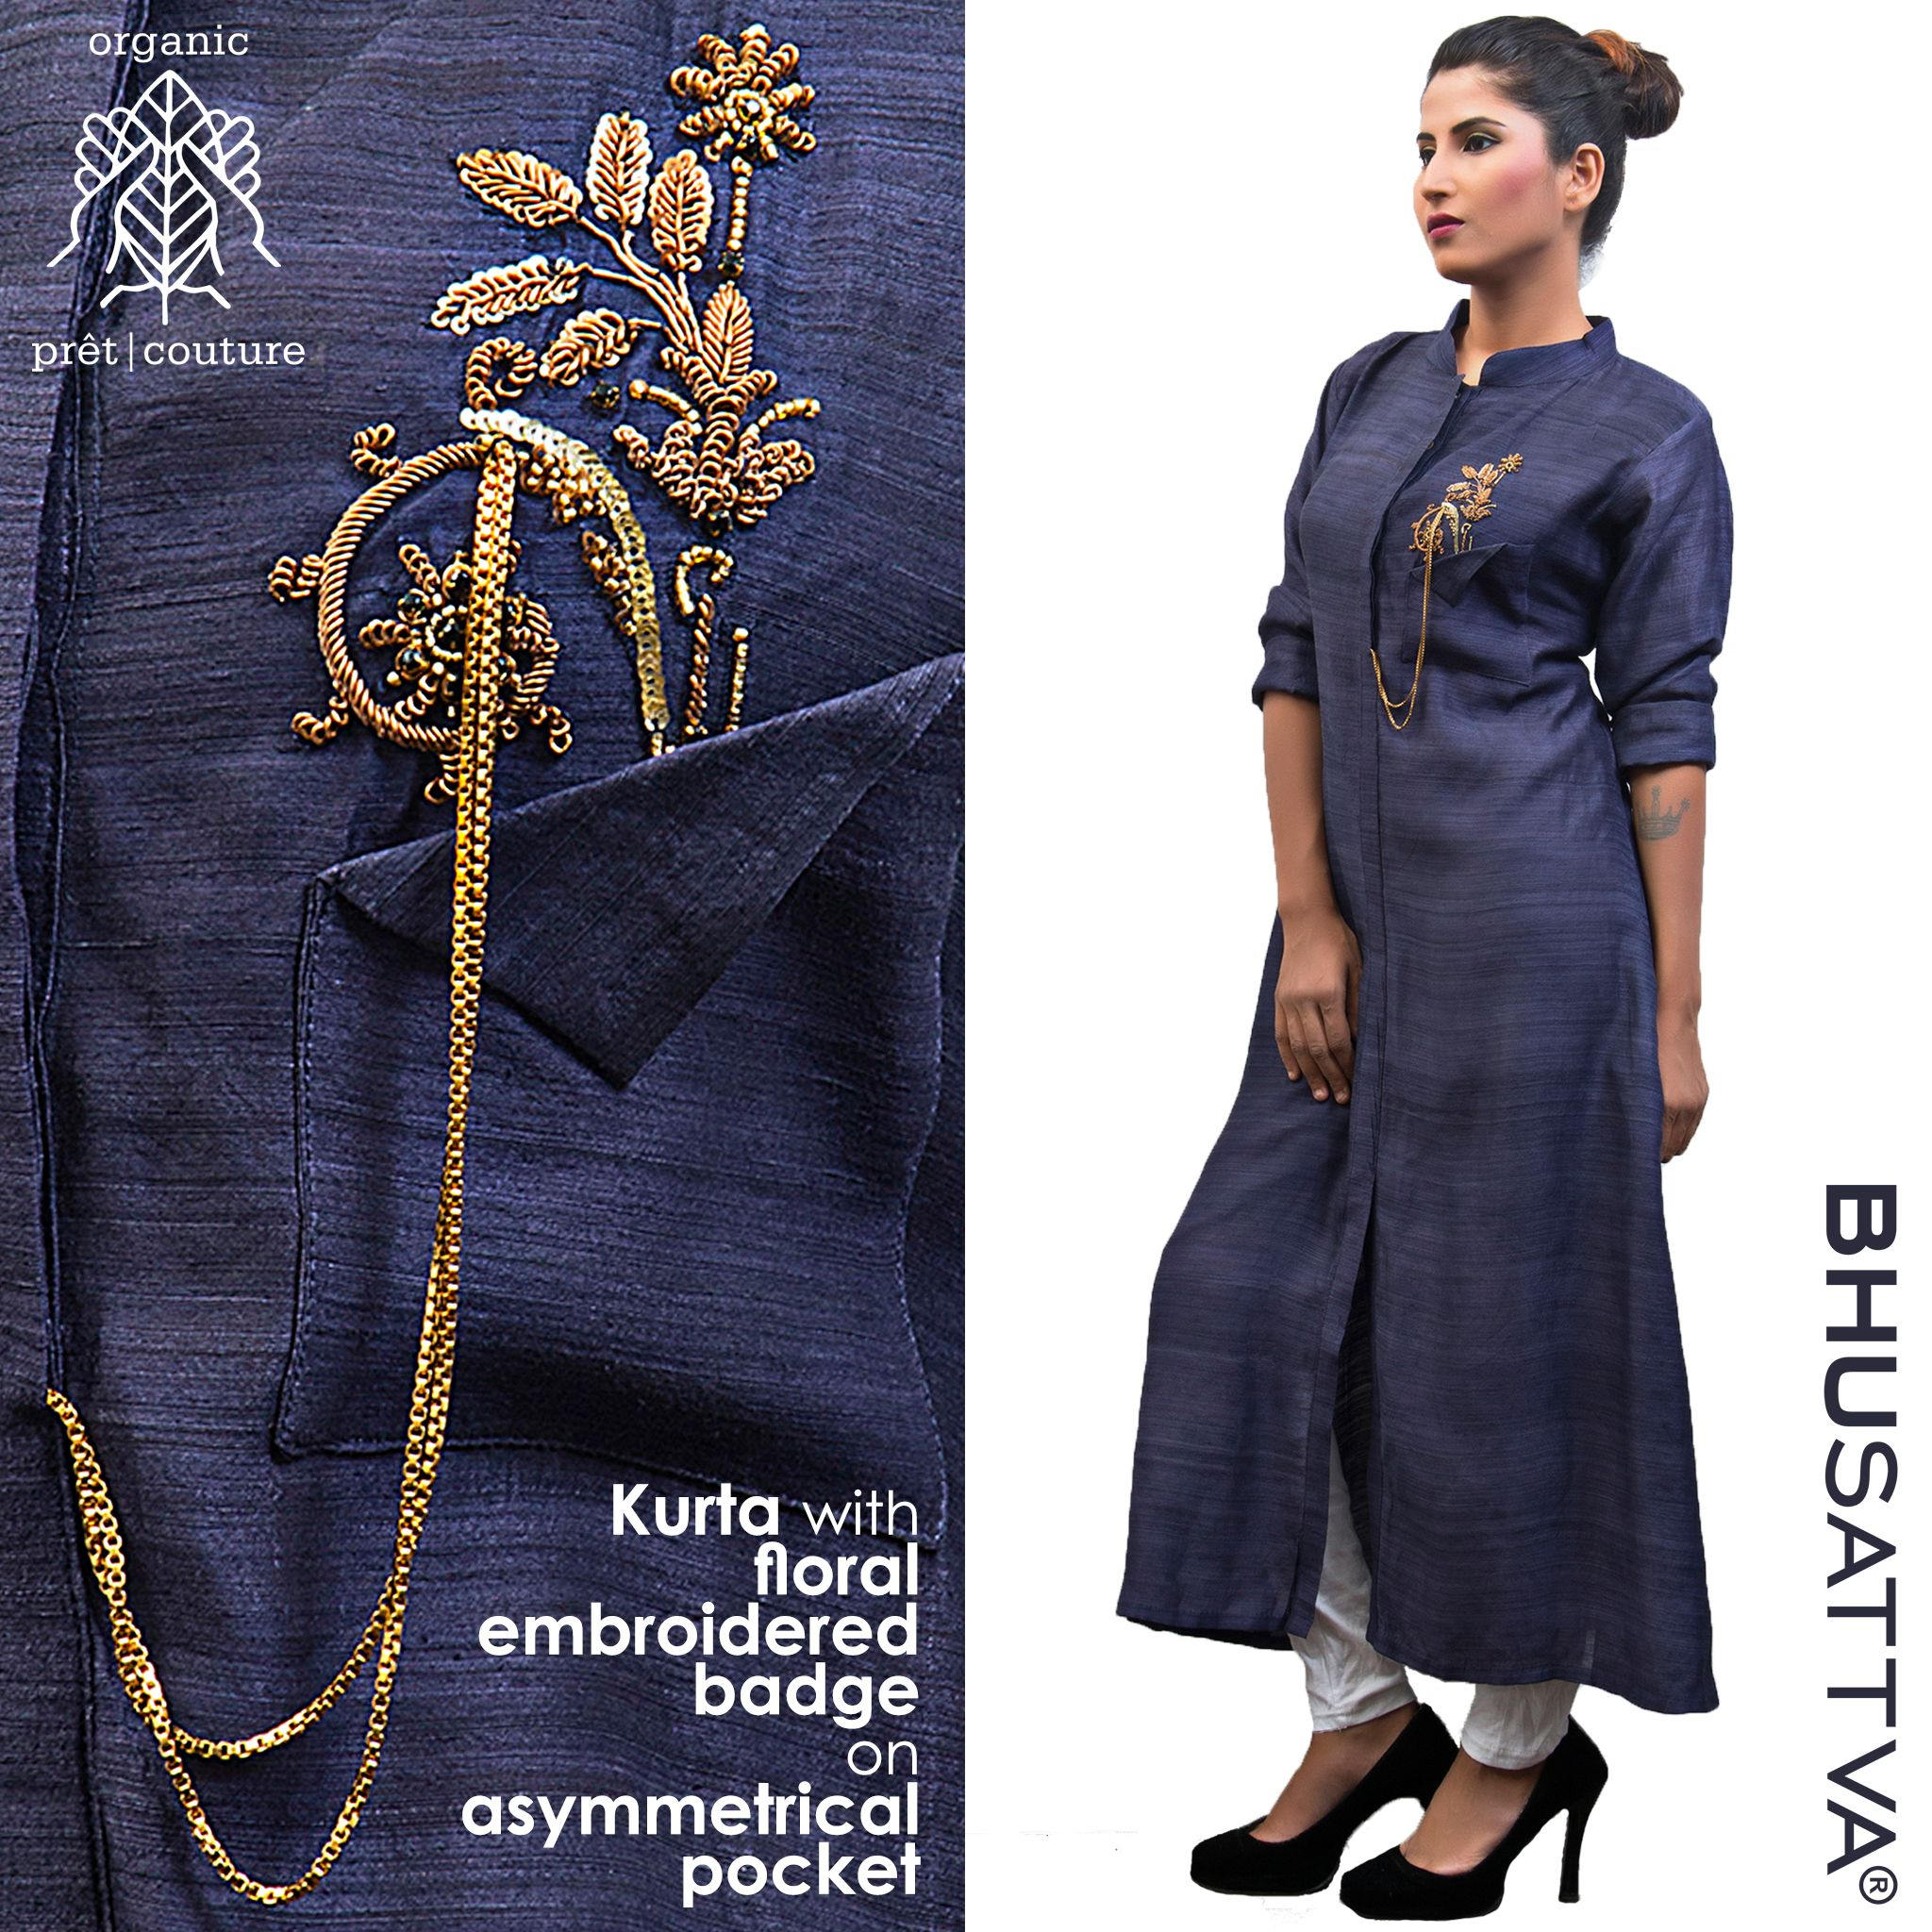 Organic elegance is grace redefined... Flaunt this amazing and elegant kurta with embroidered badge to suit your style. #Bhusattva #BhusattvaOrganic #BlackIsBack #ReflectOrganic #RevealYourself #iWearBhusattva #BelieveWhatYouWear #TrustNature #ArtInspired #MysticalNature #CloseToNature #OrganicIdeology #OrganicCollection #NaturalDyes #EcoFashion #OrganicFashion #SustainableFashion #GoOrganic #WearOrganic #DesignerLabel #DesignerWear #EcoFriendly #Handmade #MadeInIndia #MakeInIndia #FairTrade